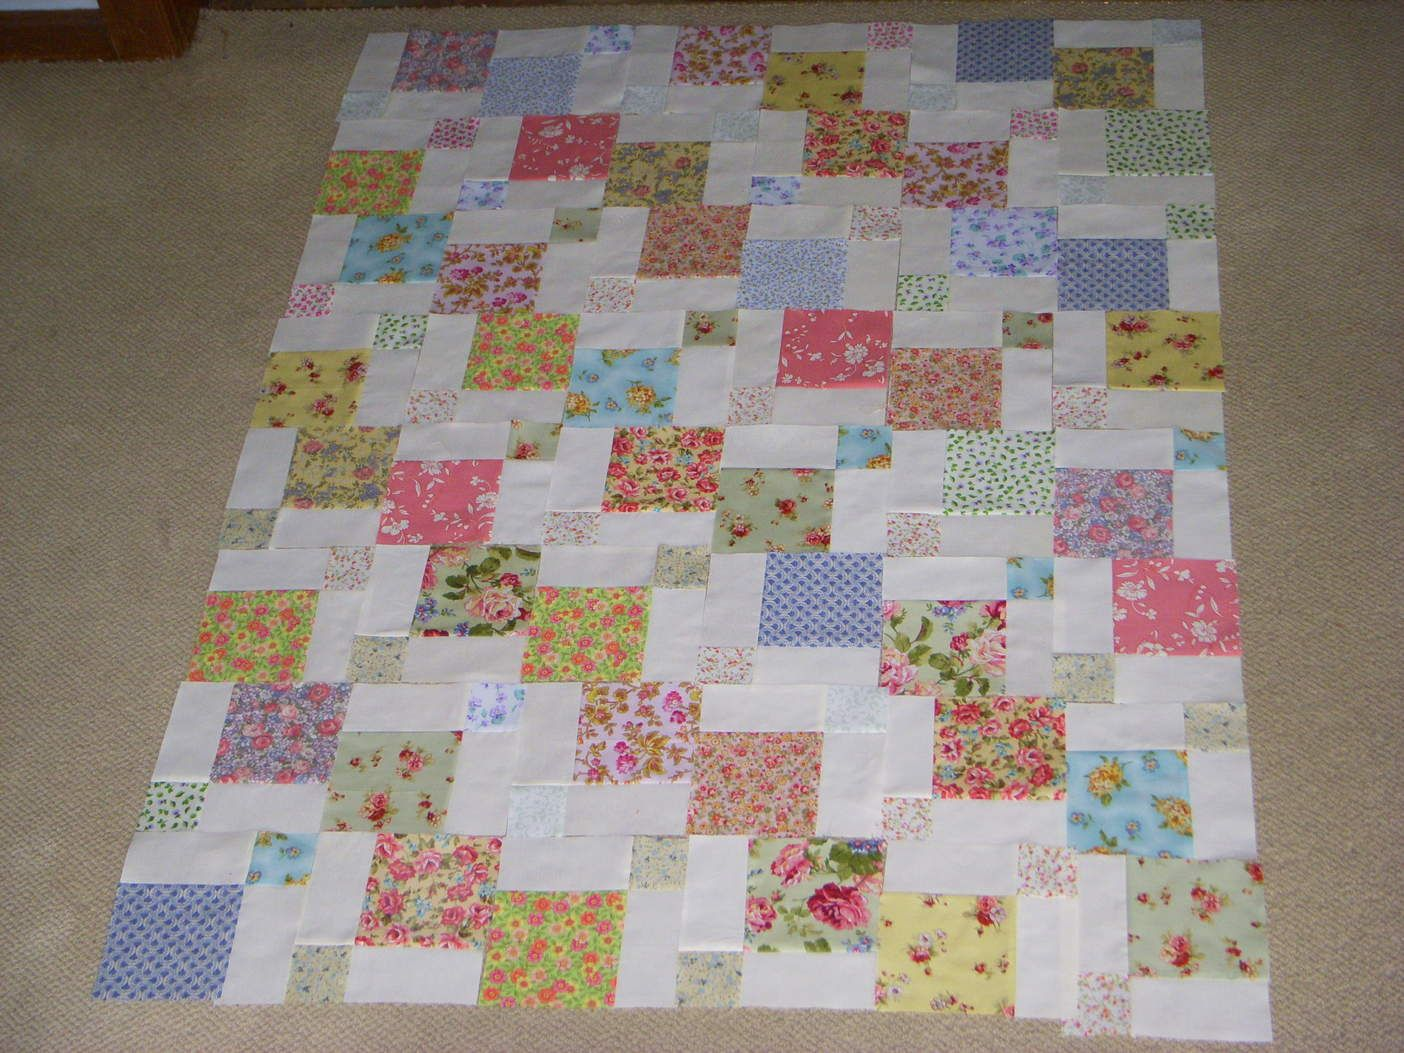 47993d1369349636-falling-charm-quilt-started-life-d9p-disappearing ... : d9p quilt pattern - Adamdwight.com